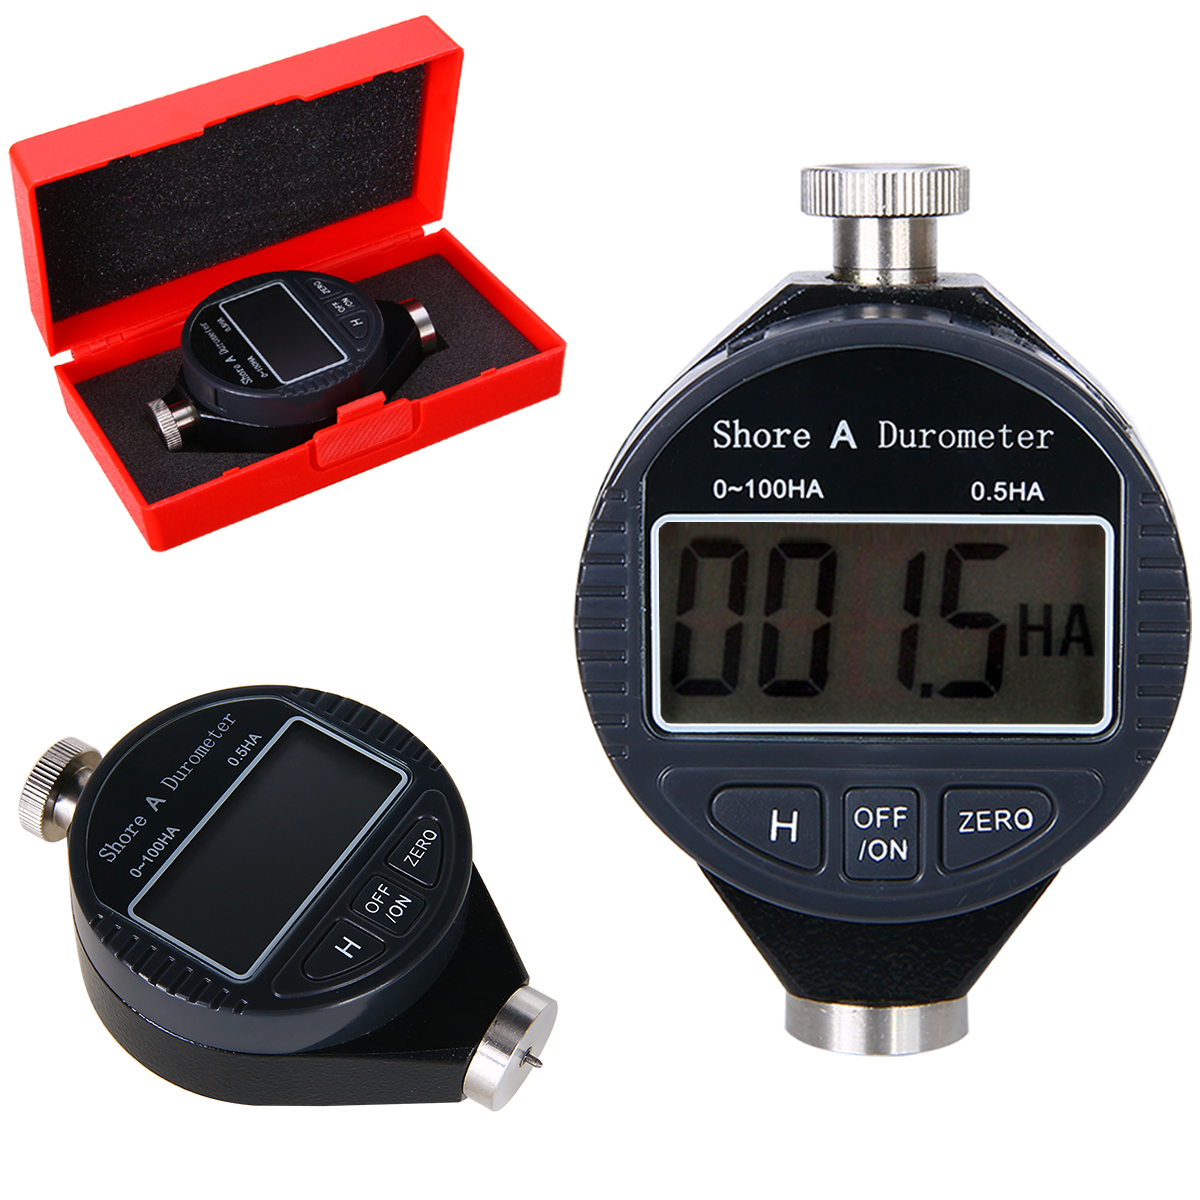 New Digital Shore A Hardness Durometer Tester Professional 0 100HA Durometer Tire Rubber LCD Meter|Hardness Testers| |  - title=